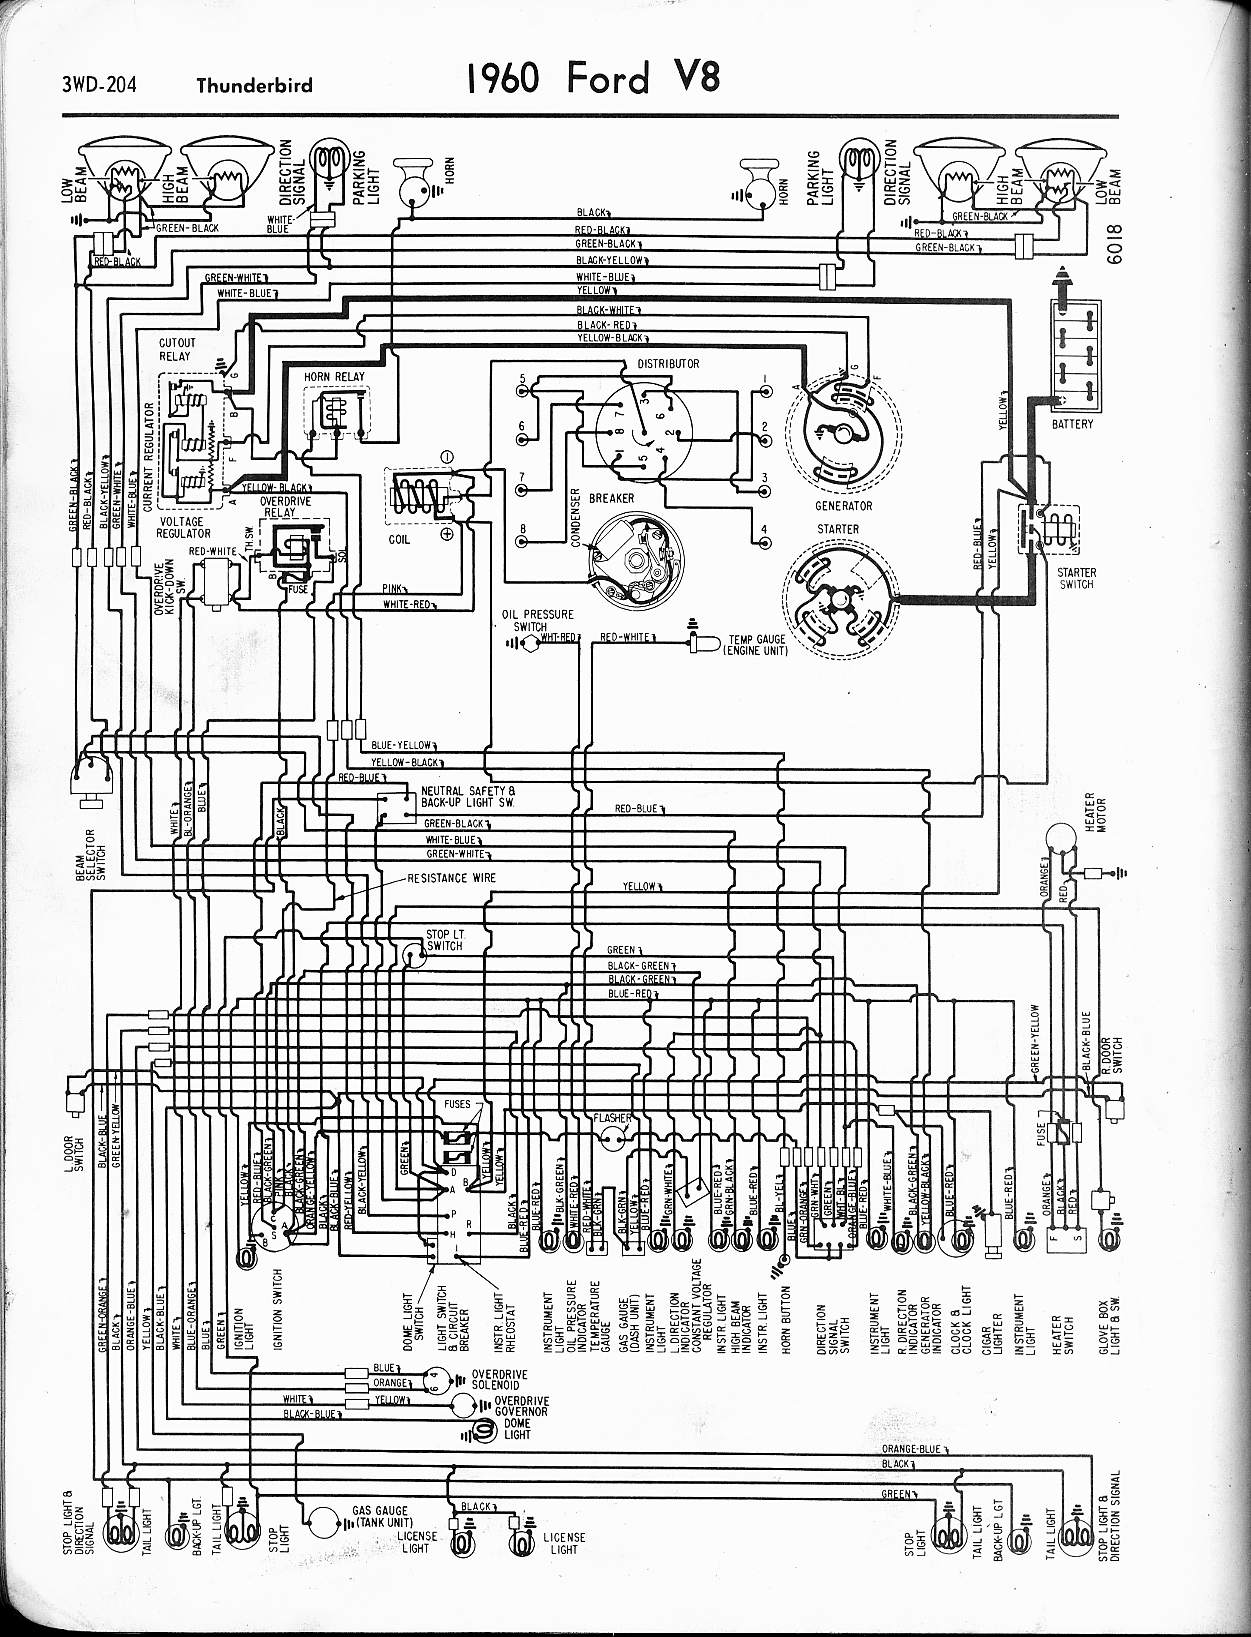 1960 Ford F100 Wiring Diagram - Data Library •